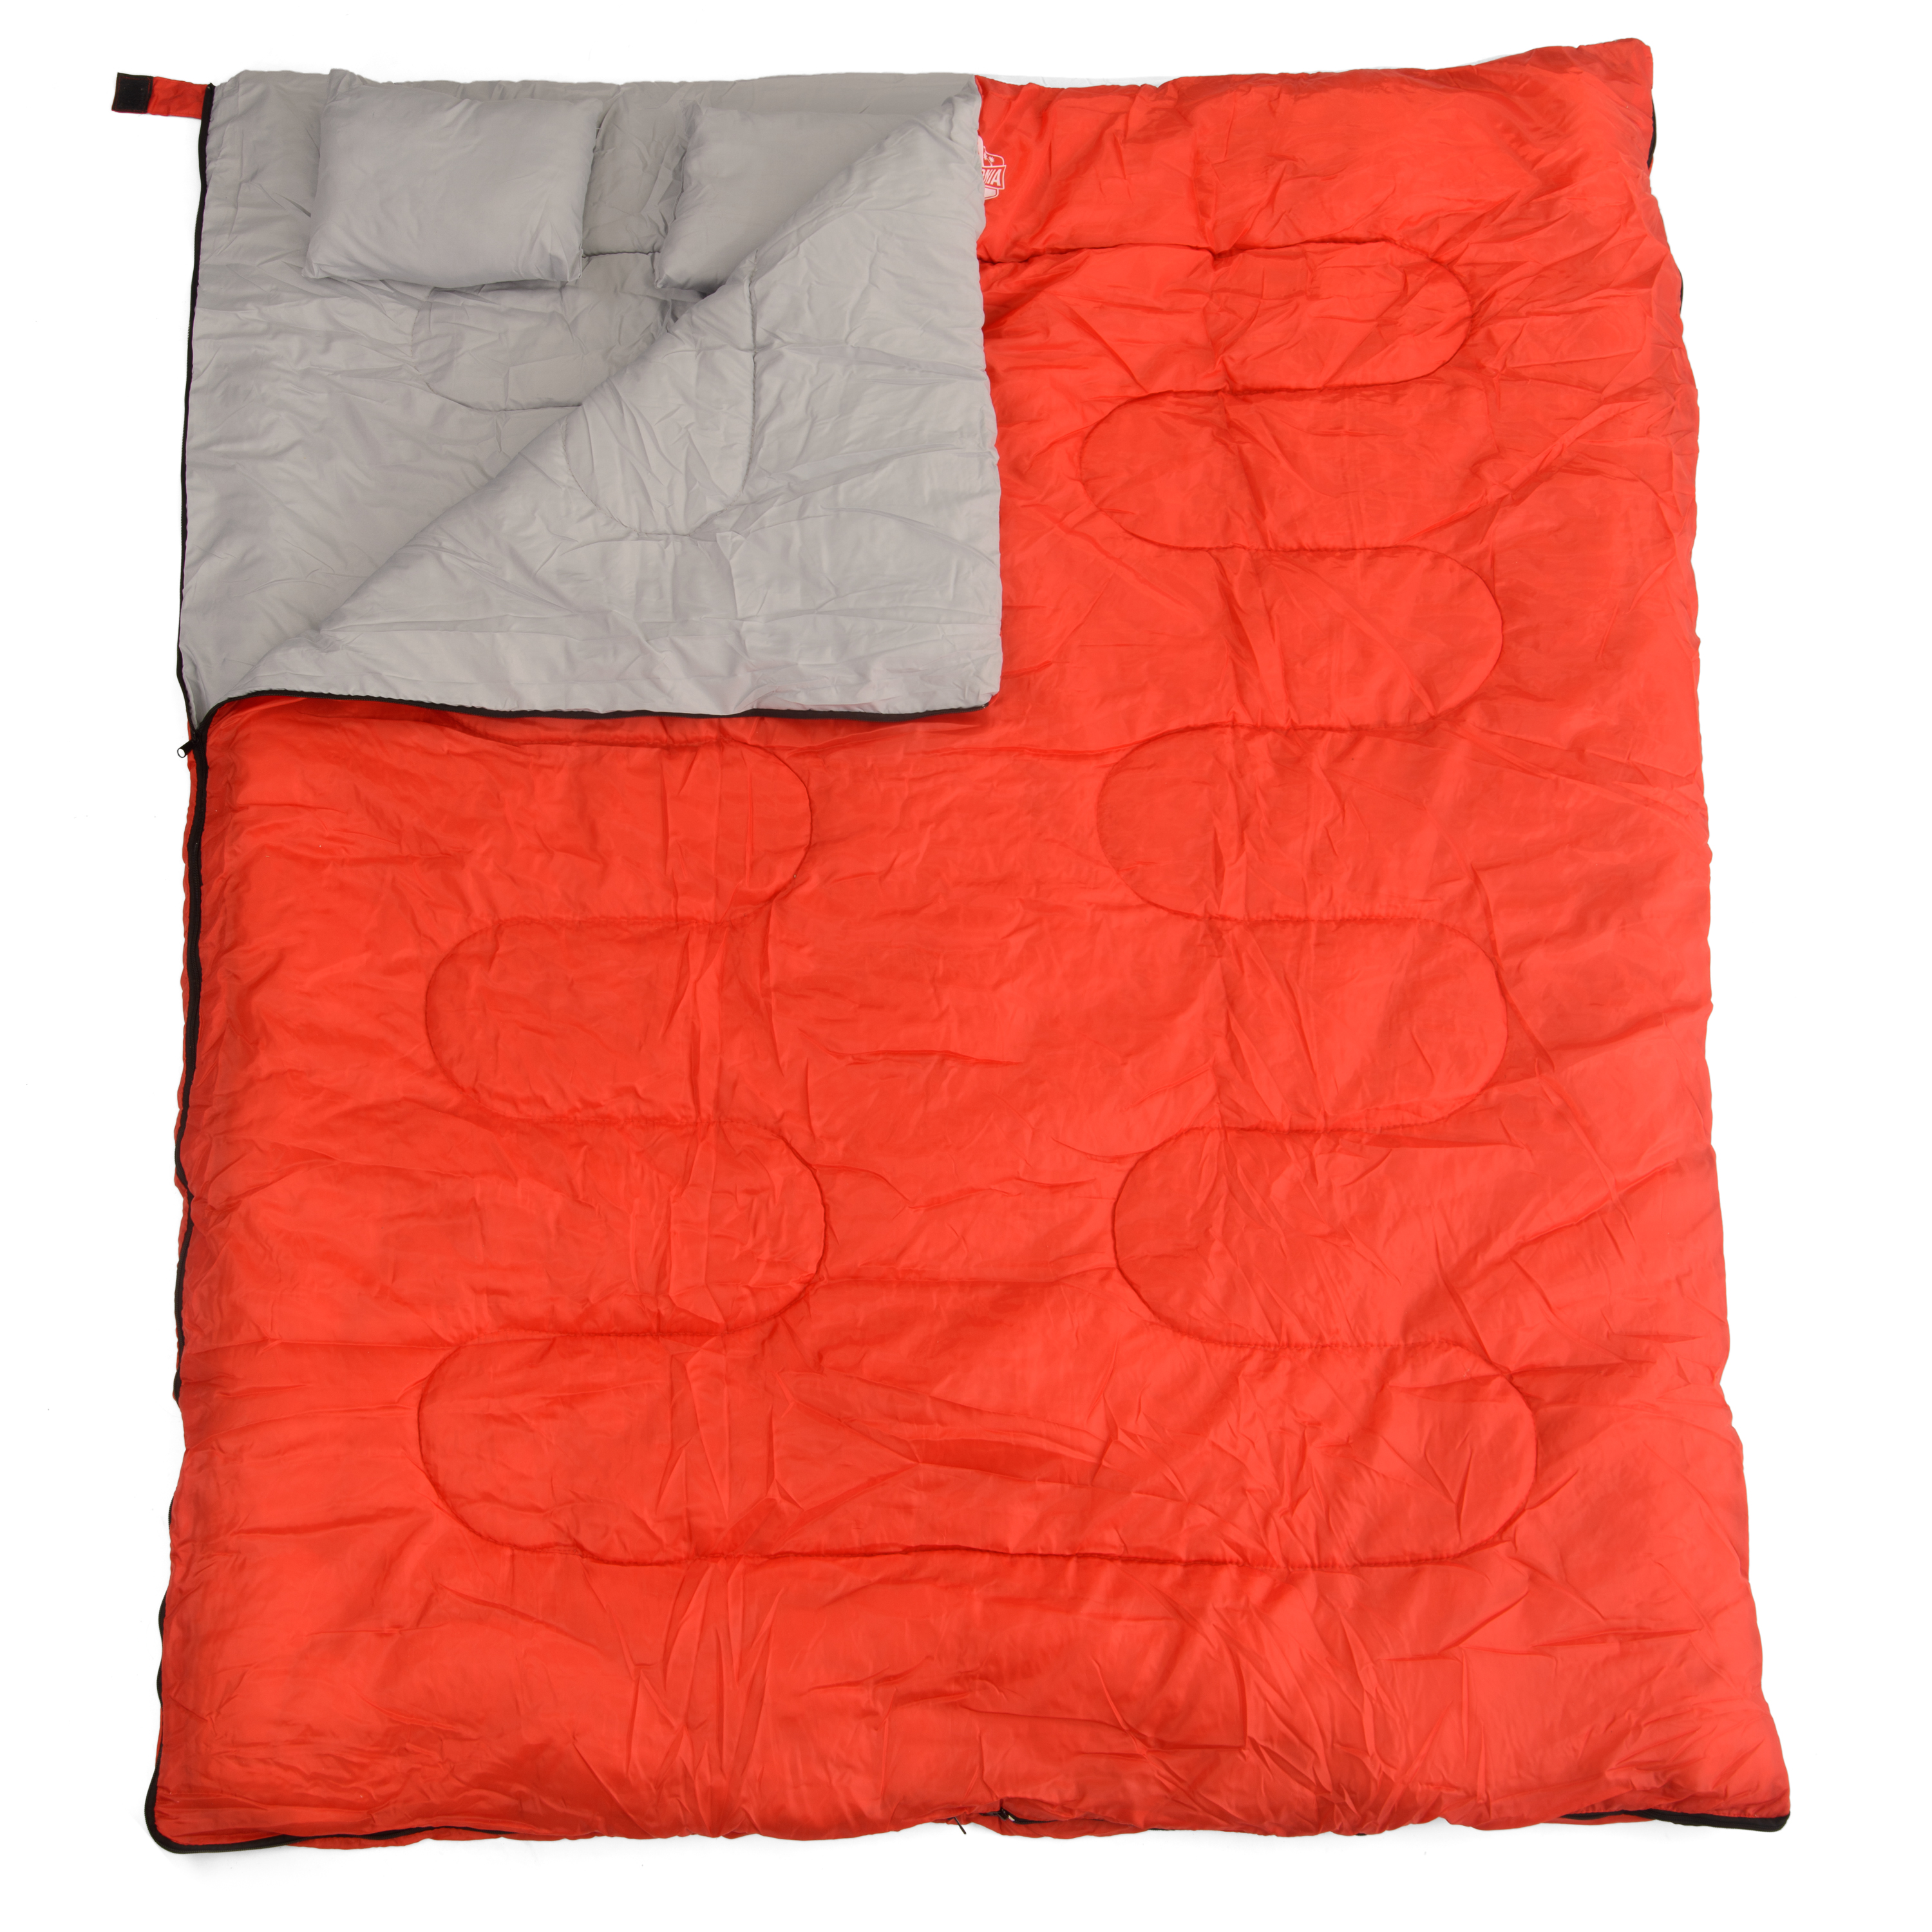 California Basics 3-4 Season 400GSM Double Sleeping Bag with Water-Resistant Shell for Camping, Hiking, Backpacking and Outdoors, includes 2... by California Basics